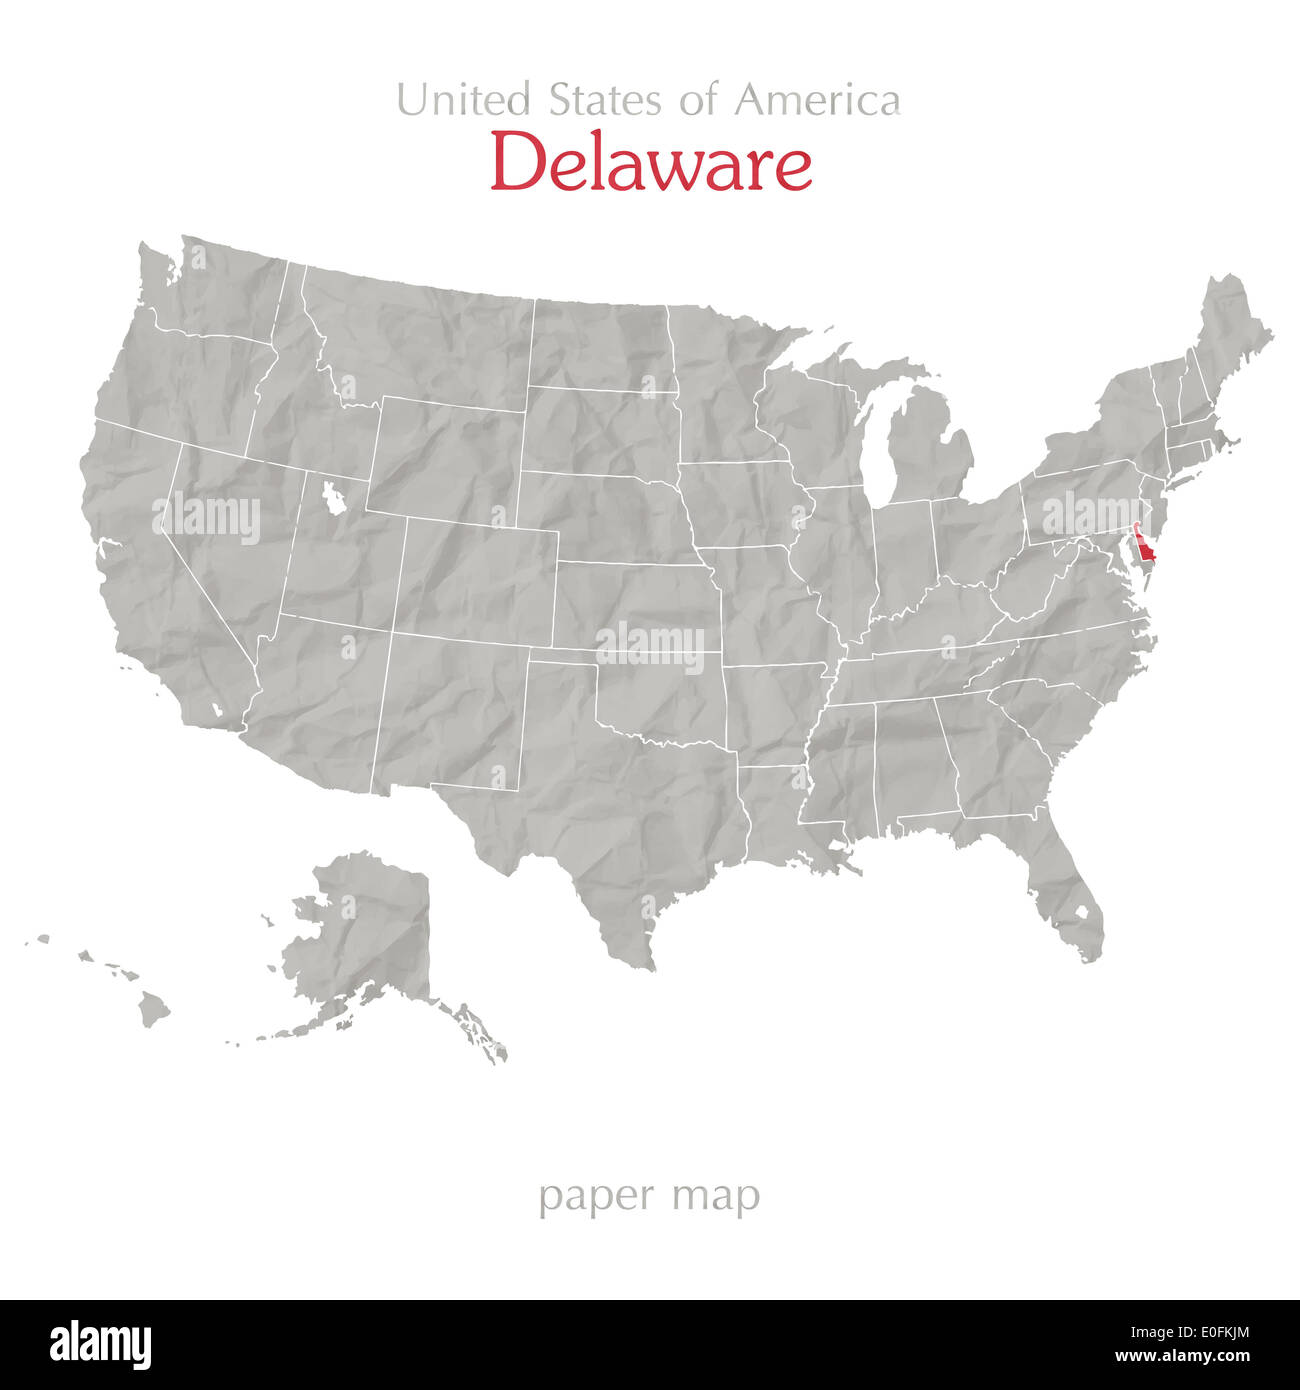 United States of America map and Delaware state territory on shabby ...